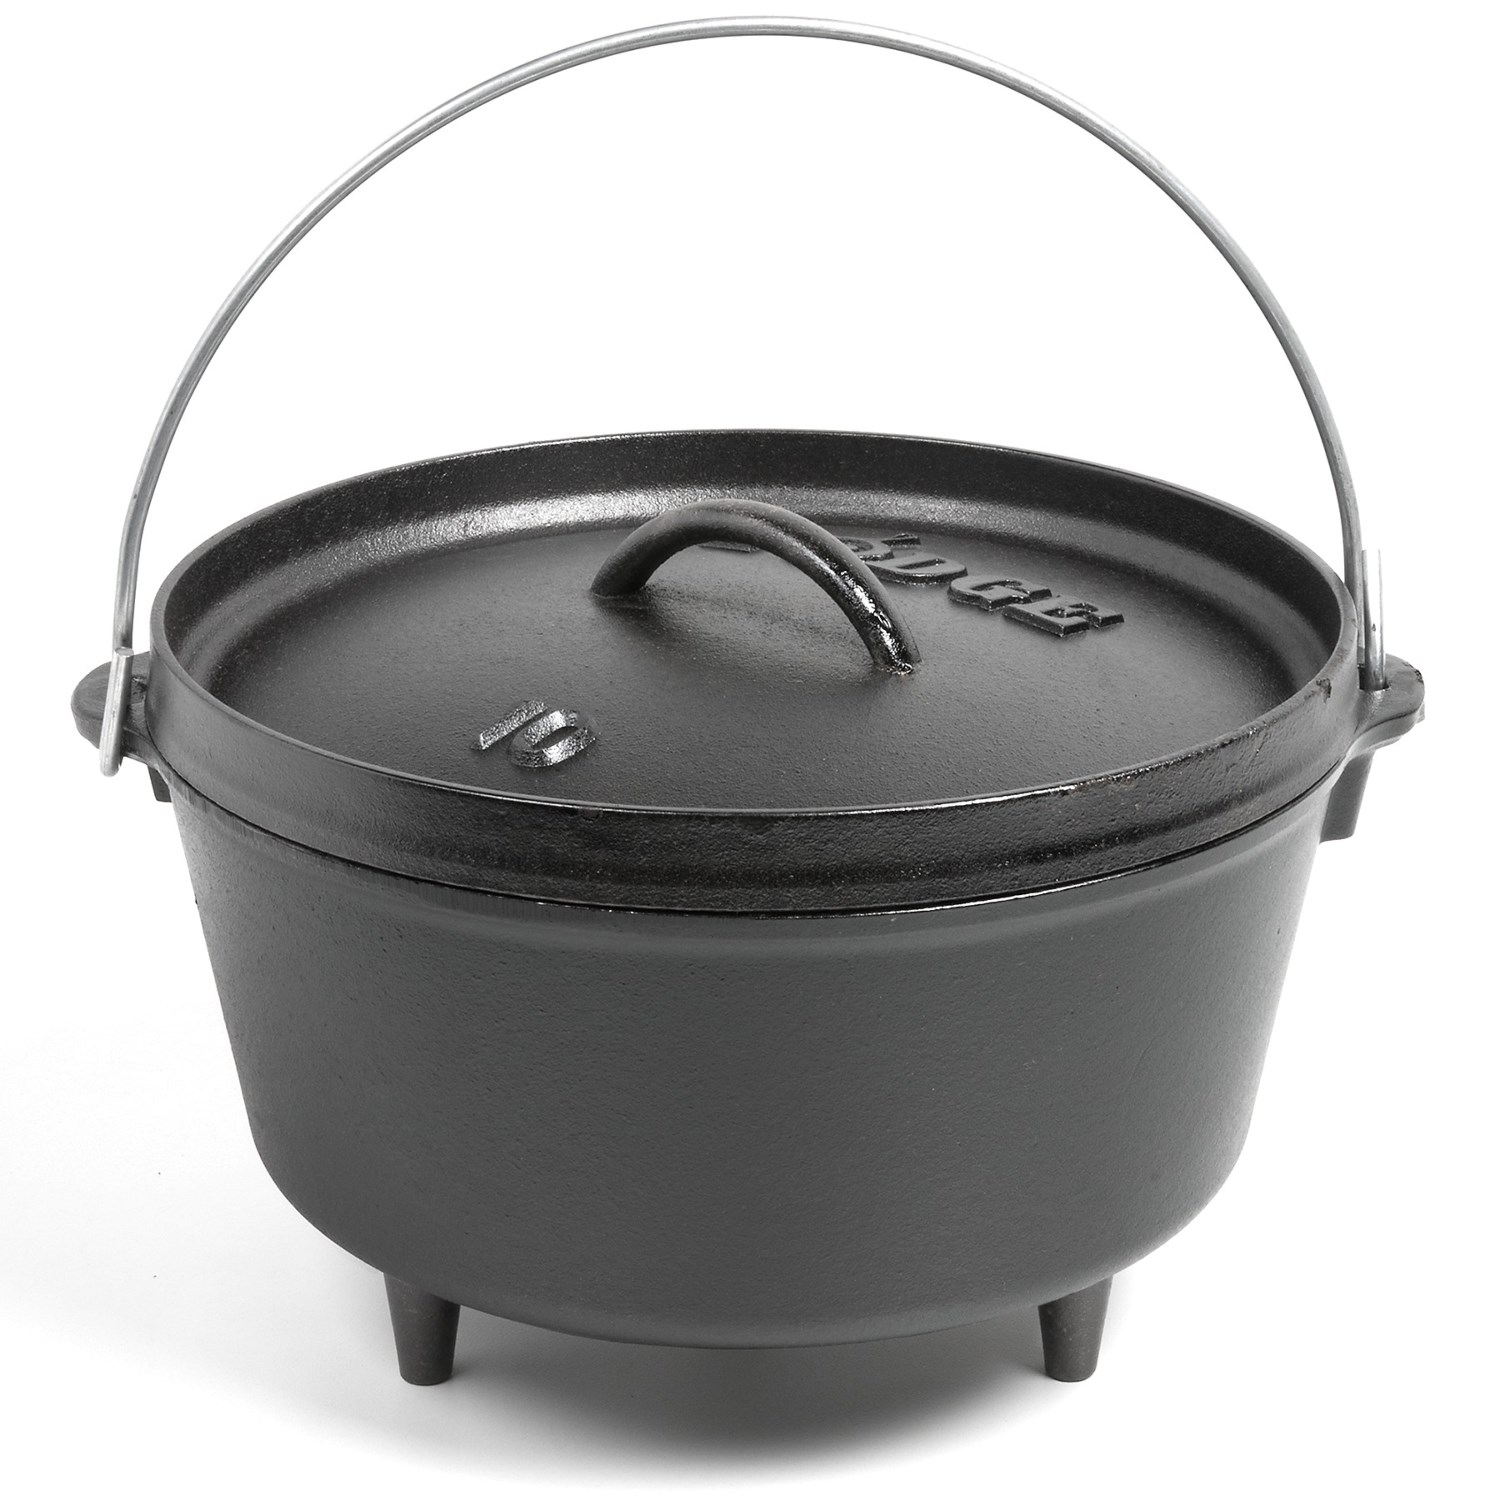 Lodge deep camp dutch oven cast iron 5 qt 8187h save 43 for Dutch oven camping recipes for two